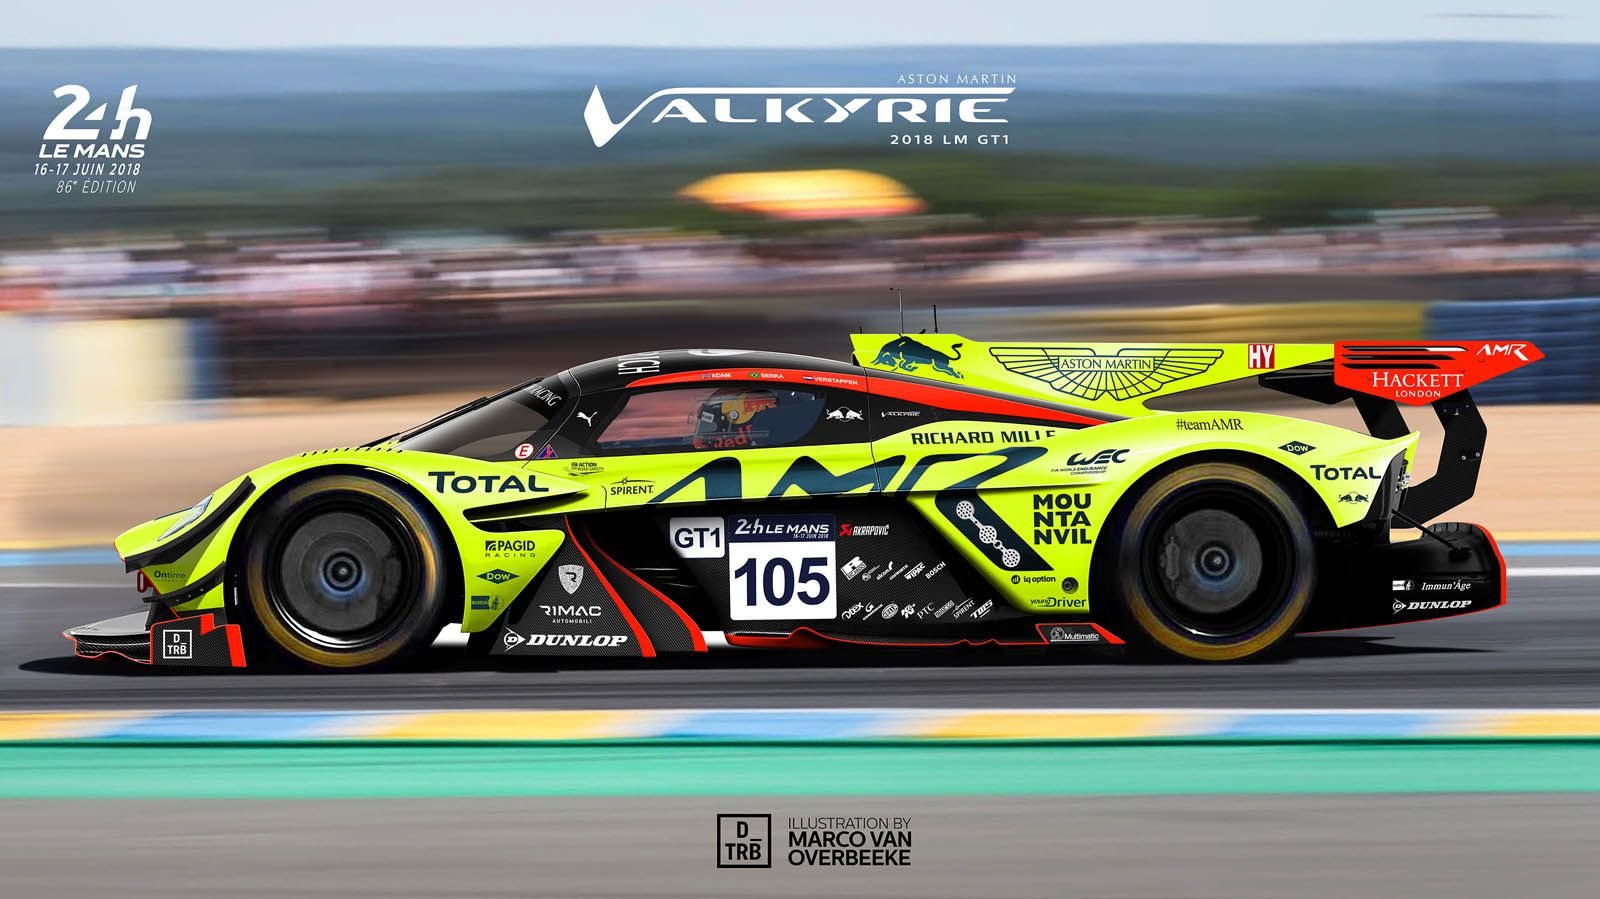 982fa8aa-le-mans-hypercar-regulations-3